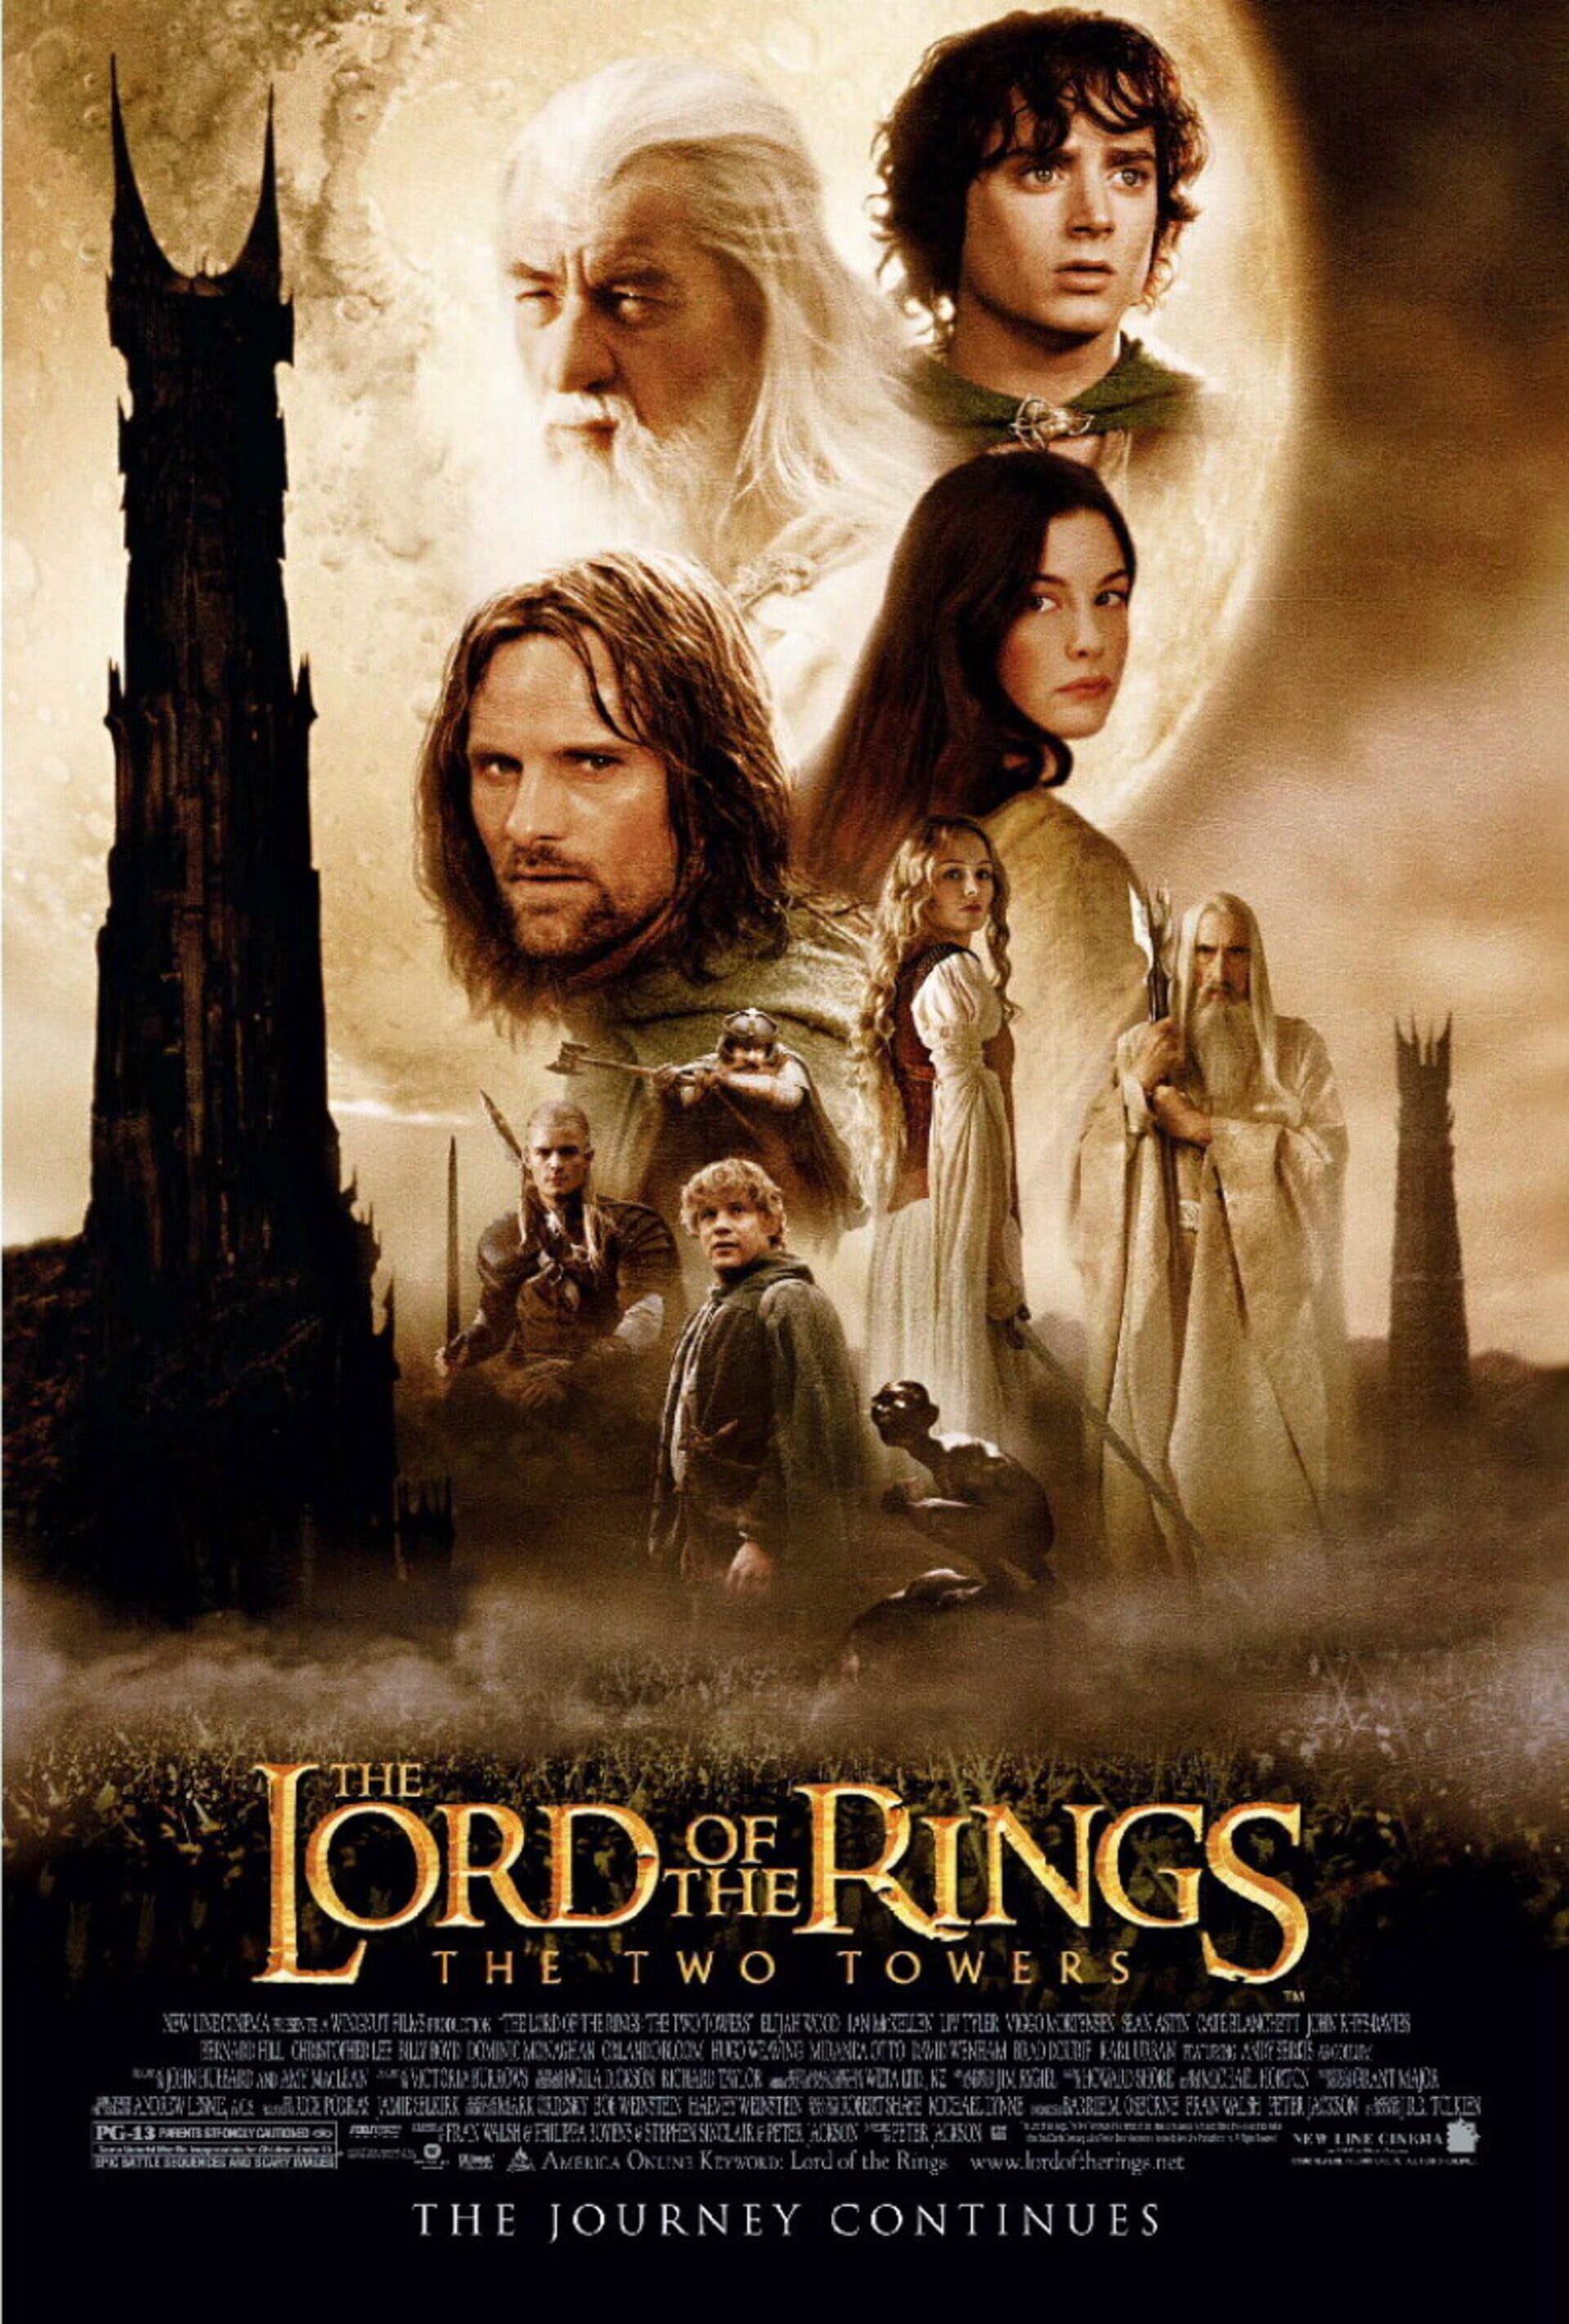 The Lord of the Rings: The Two Towers - Poster 1